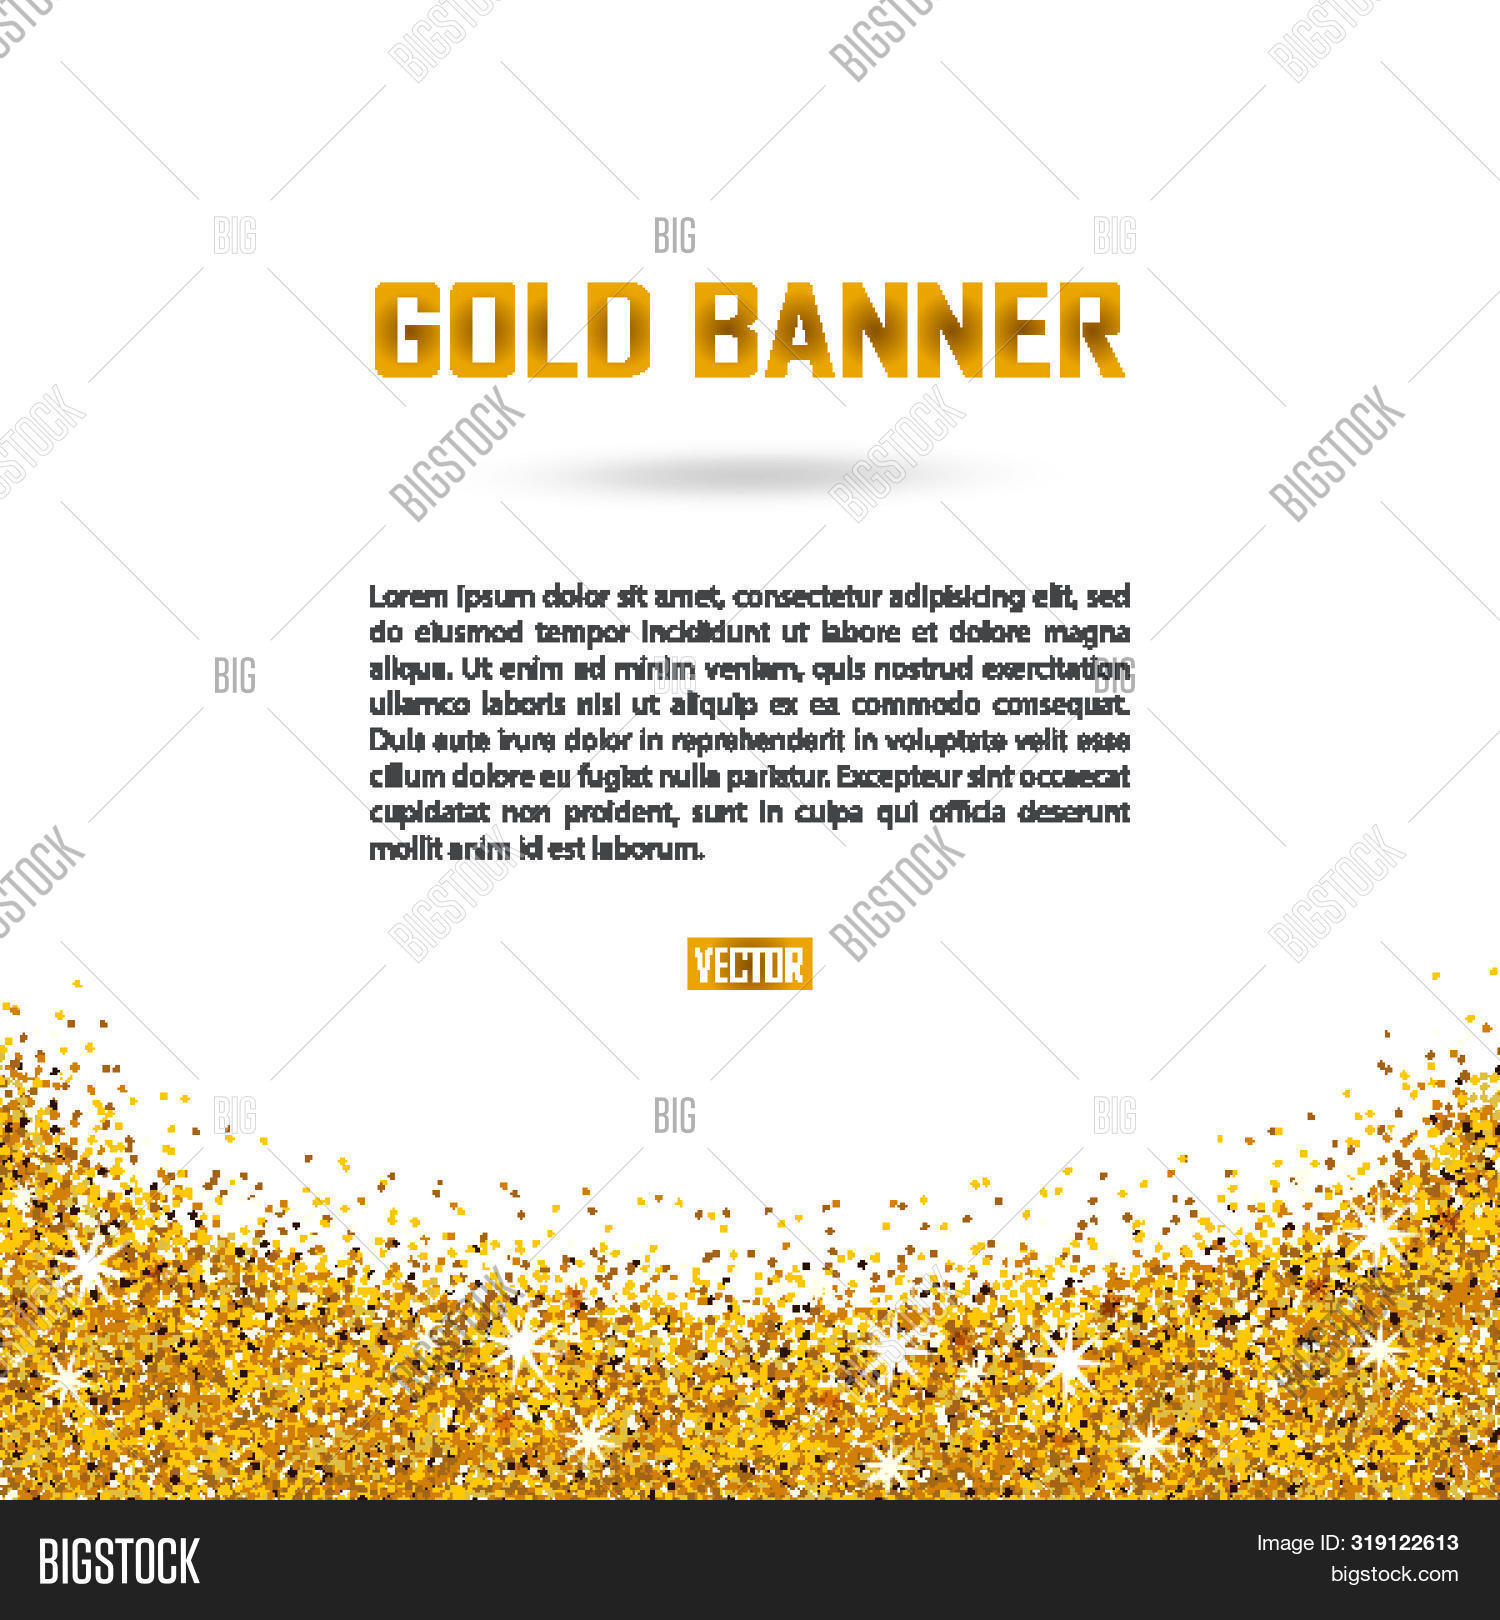 abstract,antique,backdrop,background,bright,bronze,color,decorative,design,elegant,eps,foil,gold,golden,grunge,industrial,leaf,light,luxury,material,metal,metallic,modern,old,paper,pattern,plate,reflection,retro,rough,scratches,seamless,seemless,sheet,shiny,smooth,space,surface,texture,textured,vector,vintage,wall,wallpaper,yellow